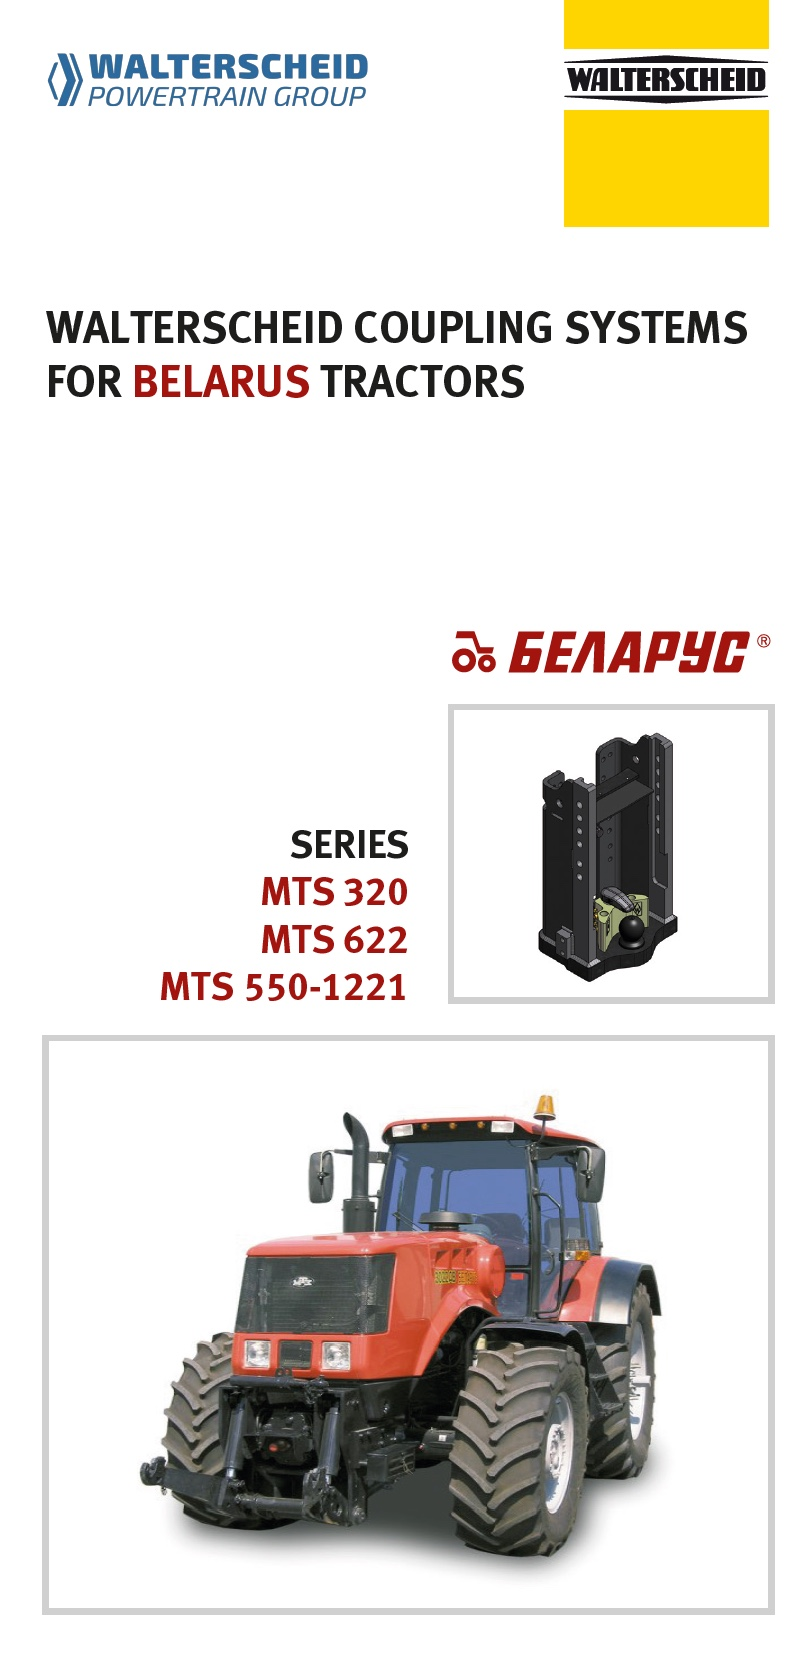 Coupling systems for Belarus tractors